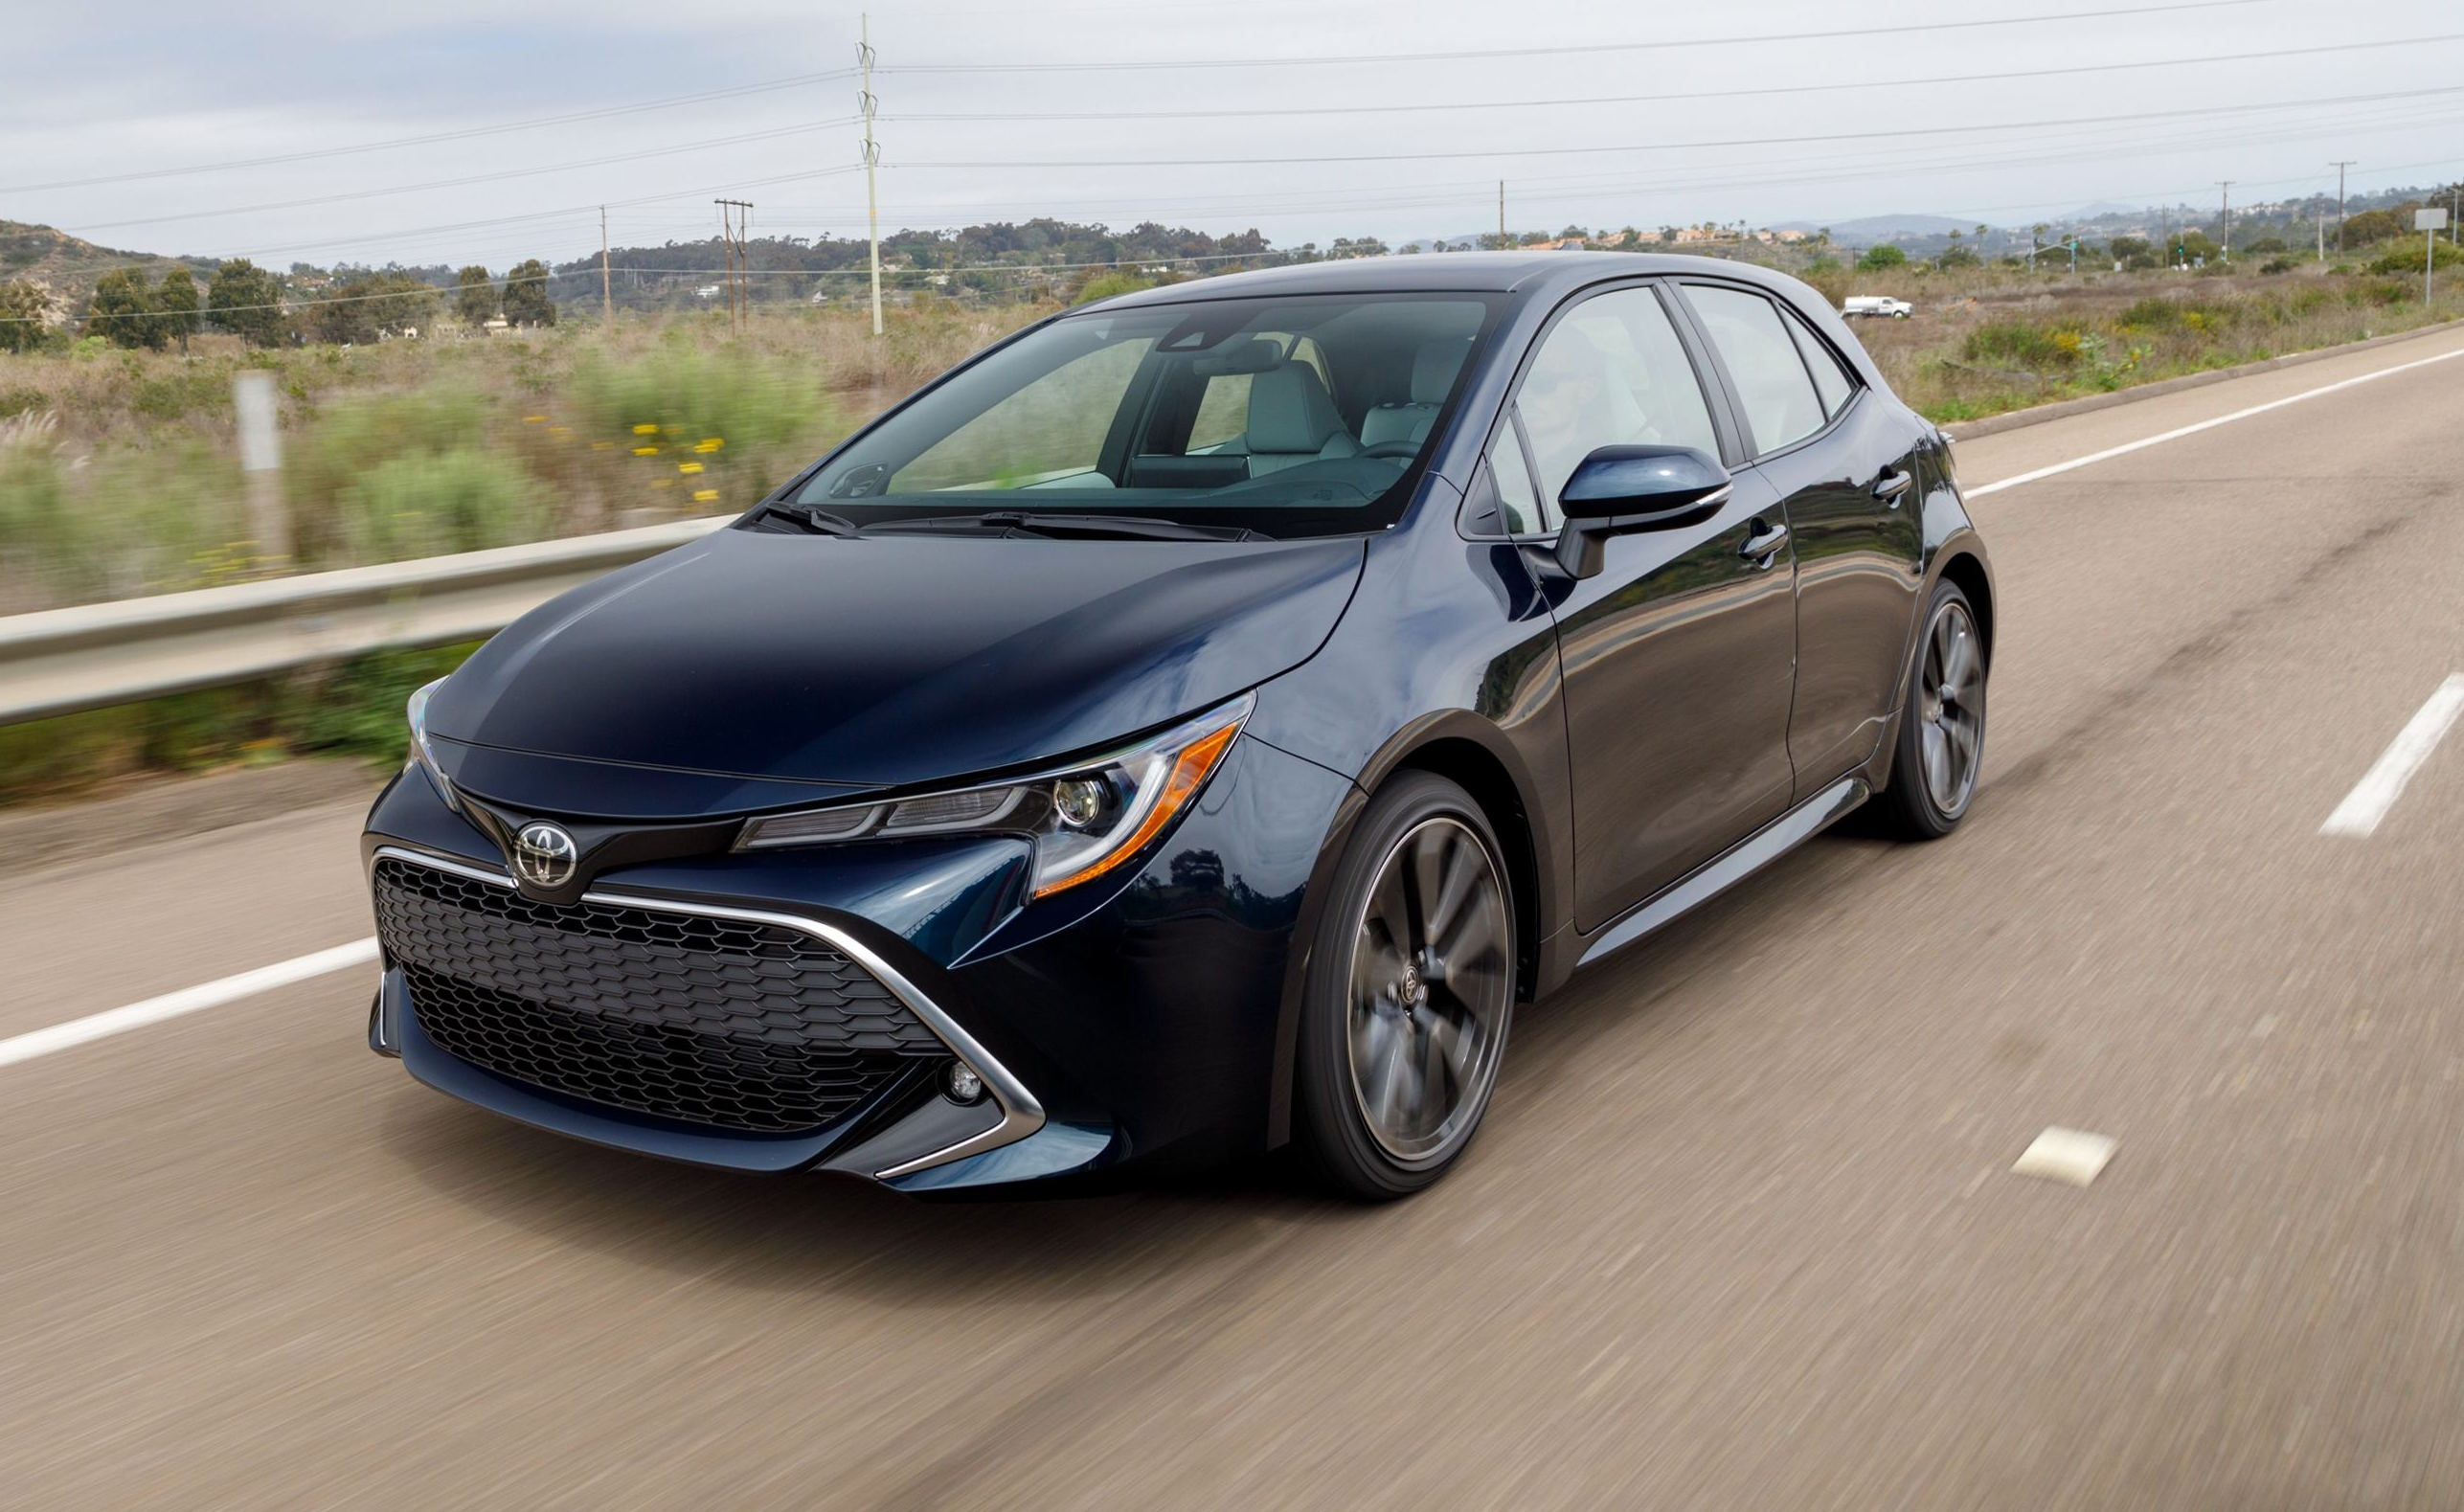 News - Toyota Peeks At All-New Corolla Ahead Of Oz Launch